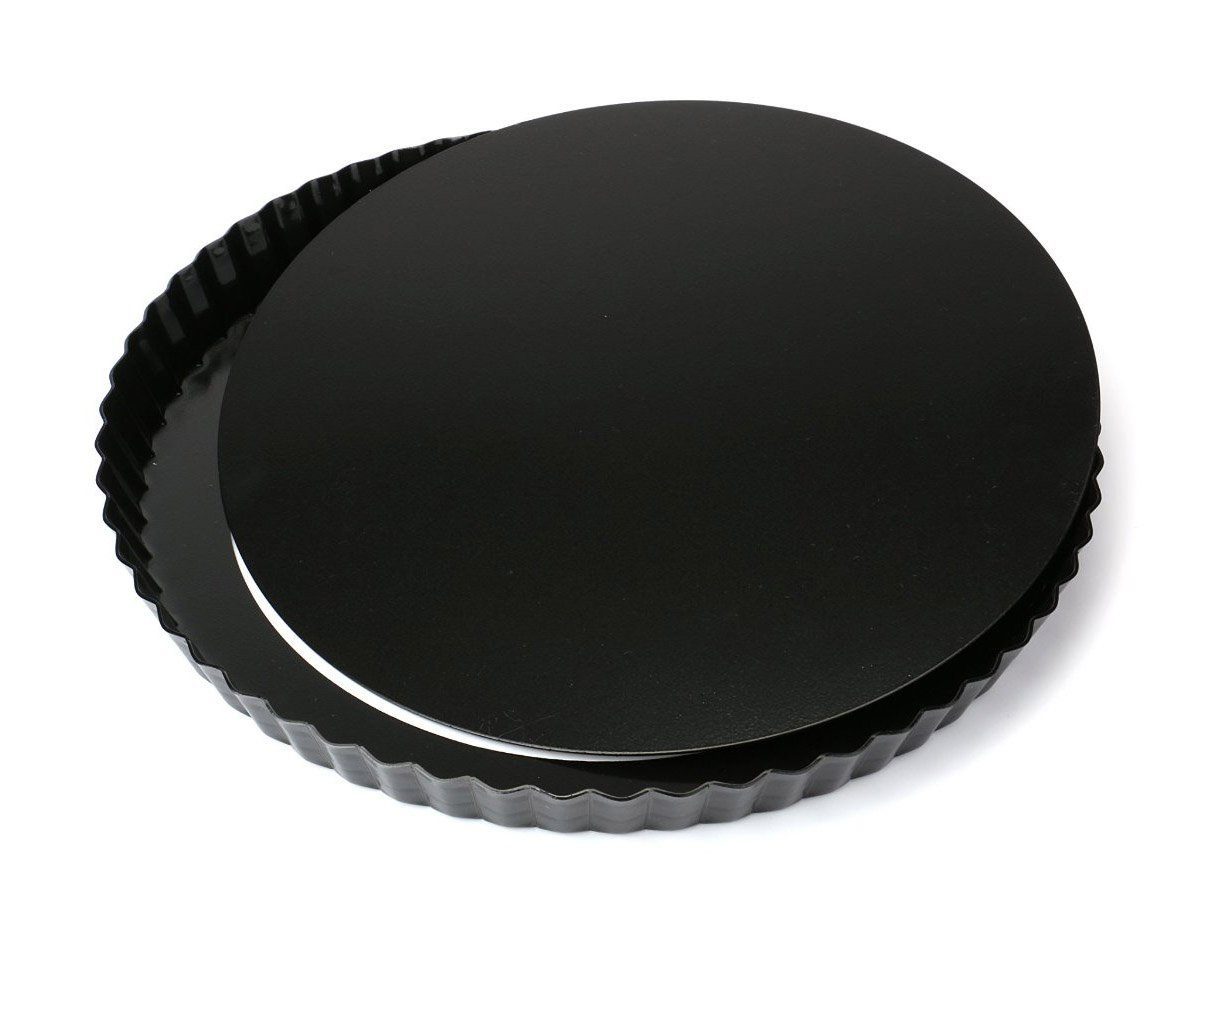 Tosnail Nonstick 11 Inch Quiche Pan, Tart Pie Pan with Removable Loose Bottom by Tosnail